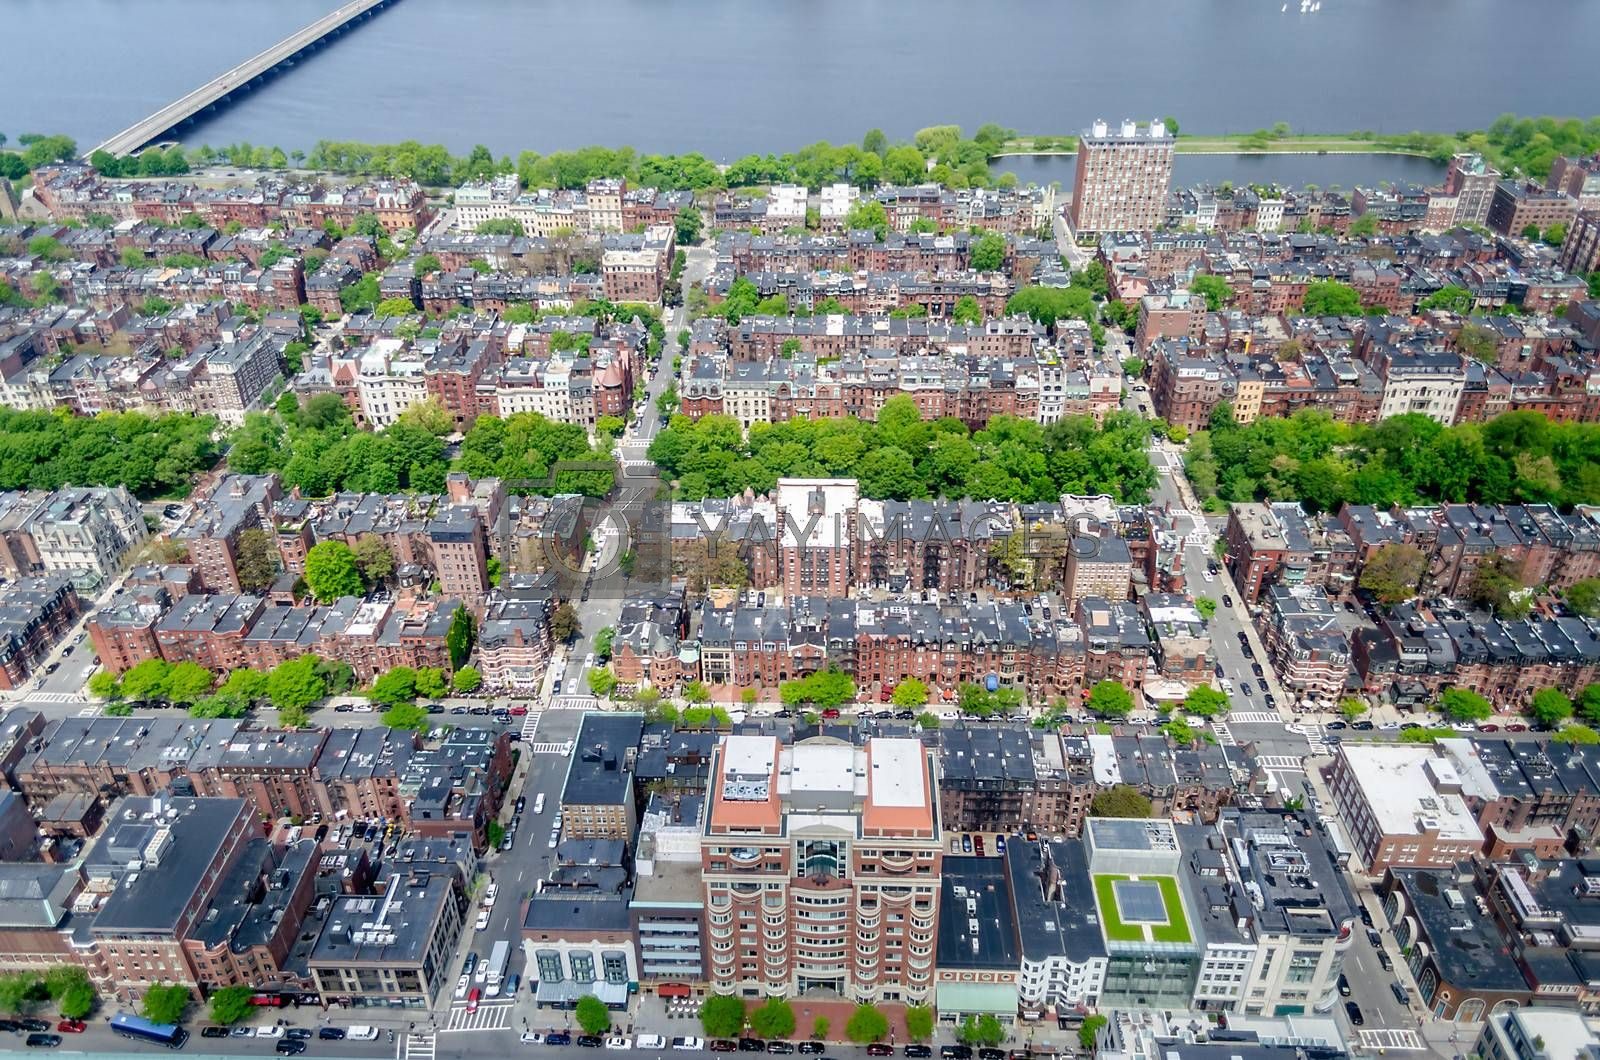 Aerial View of the Beacon Hill District and Charles River, Boston, USA